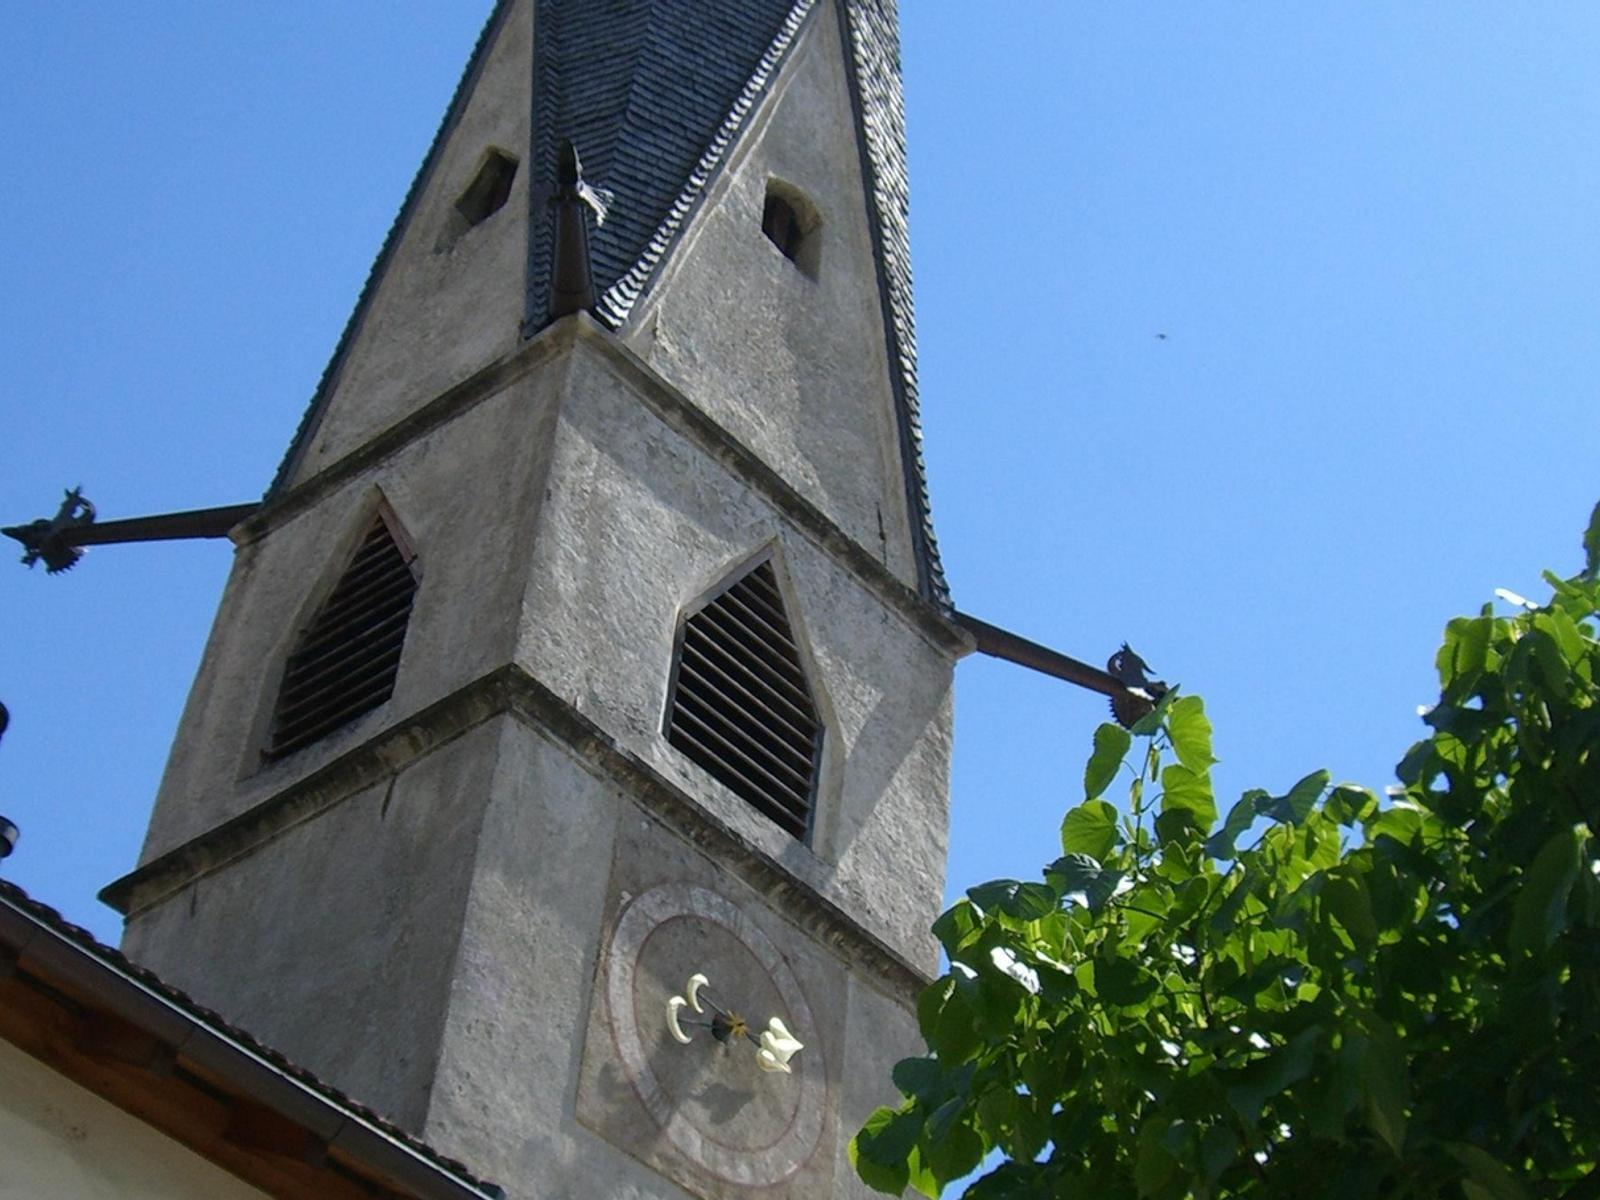 Church of Sacred Spirit, Silandro/Schlanders